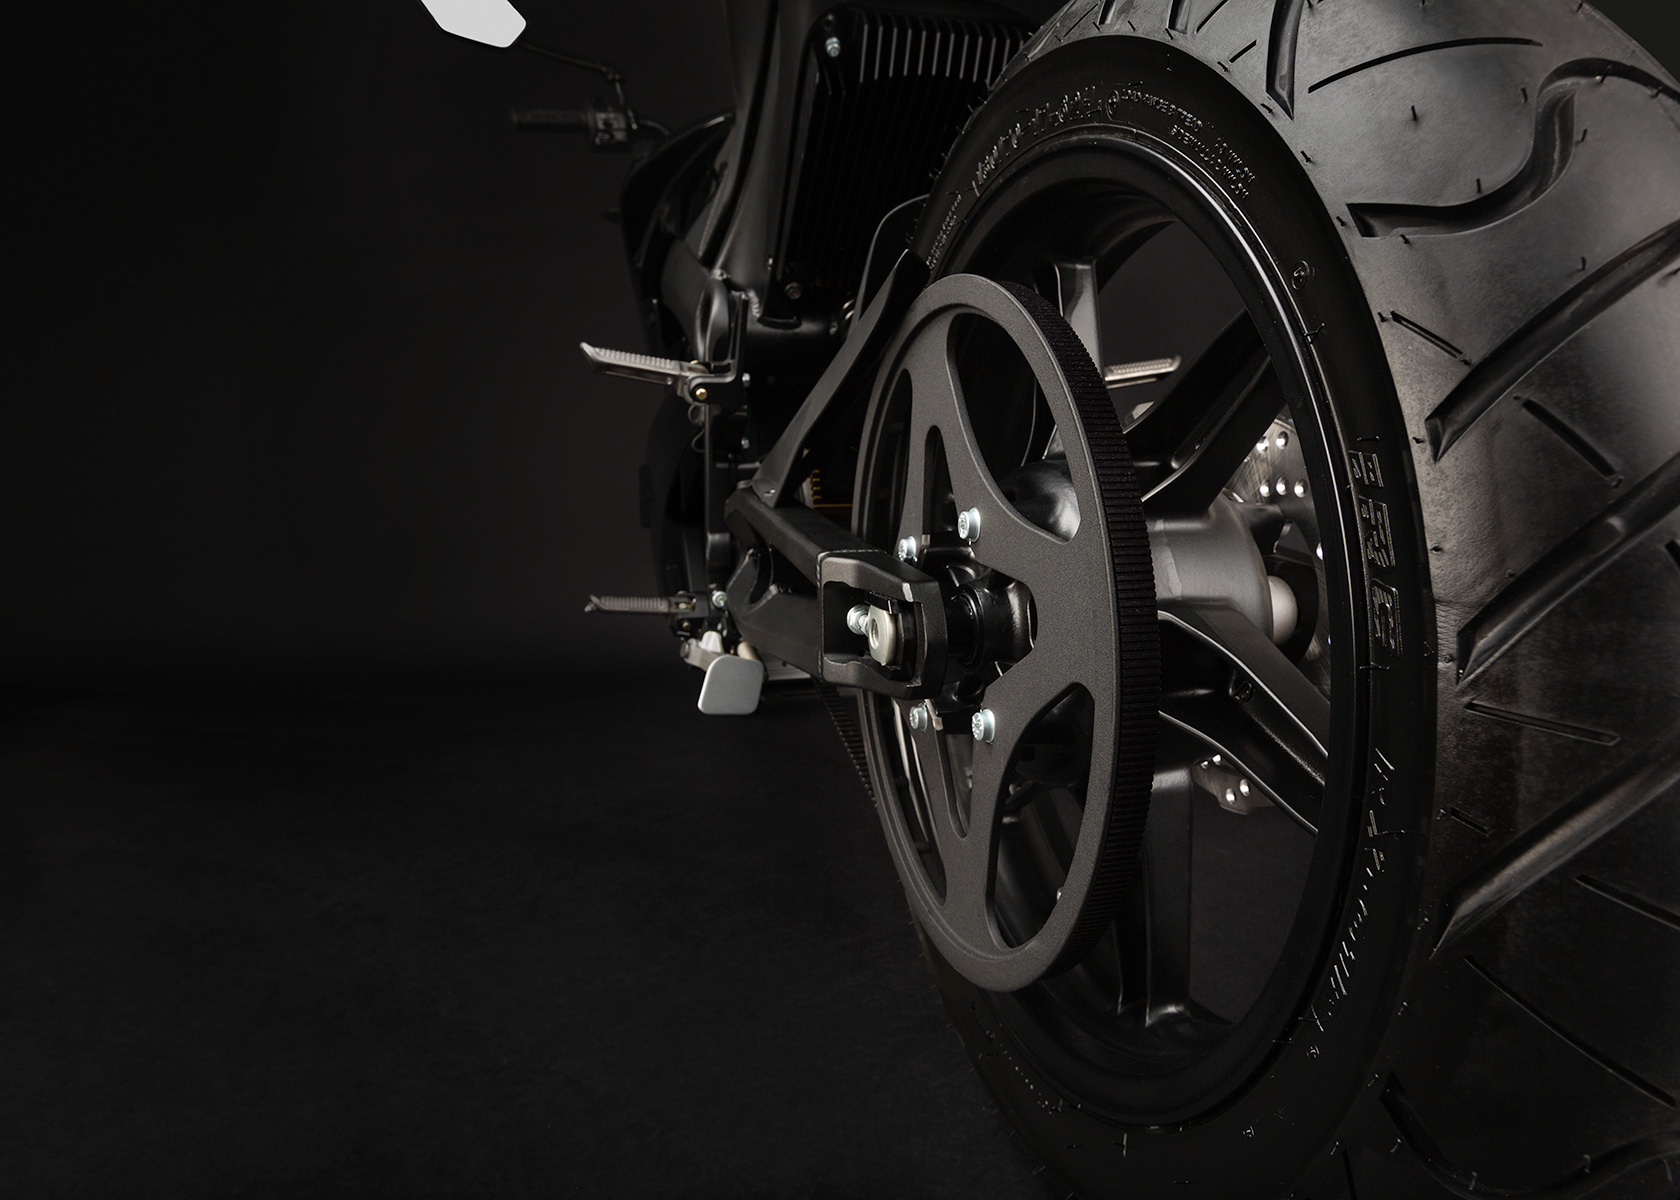 2013 Zero S Electric Motorcycle: Belt Drive